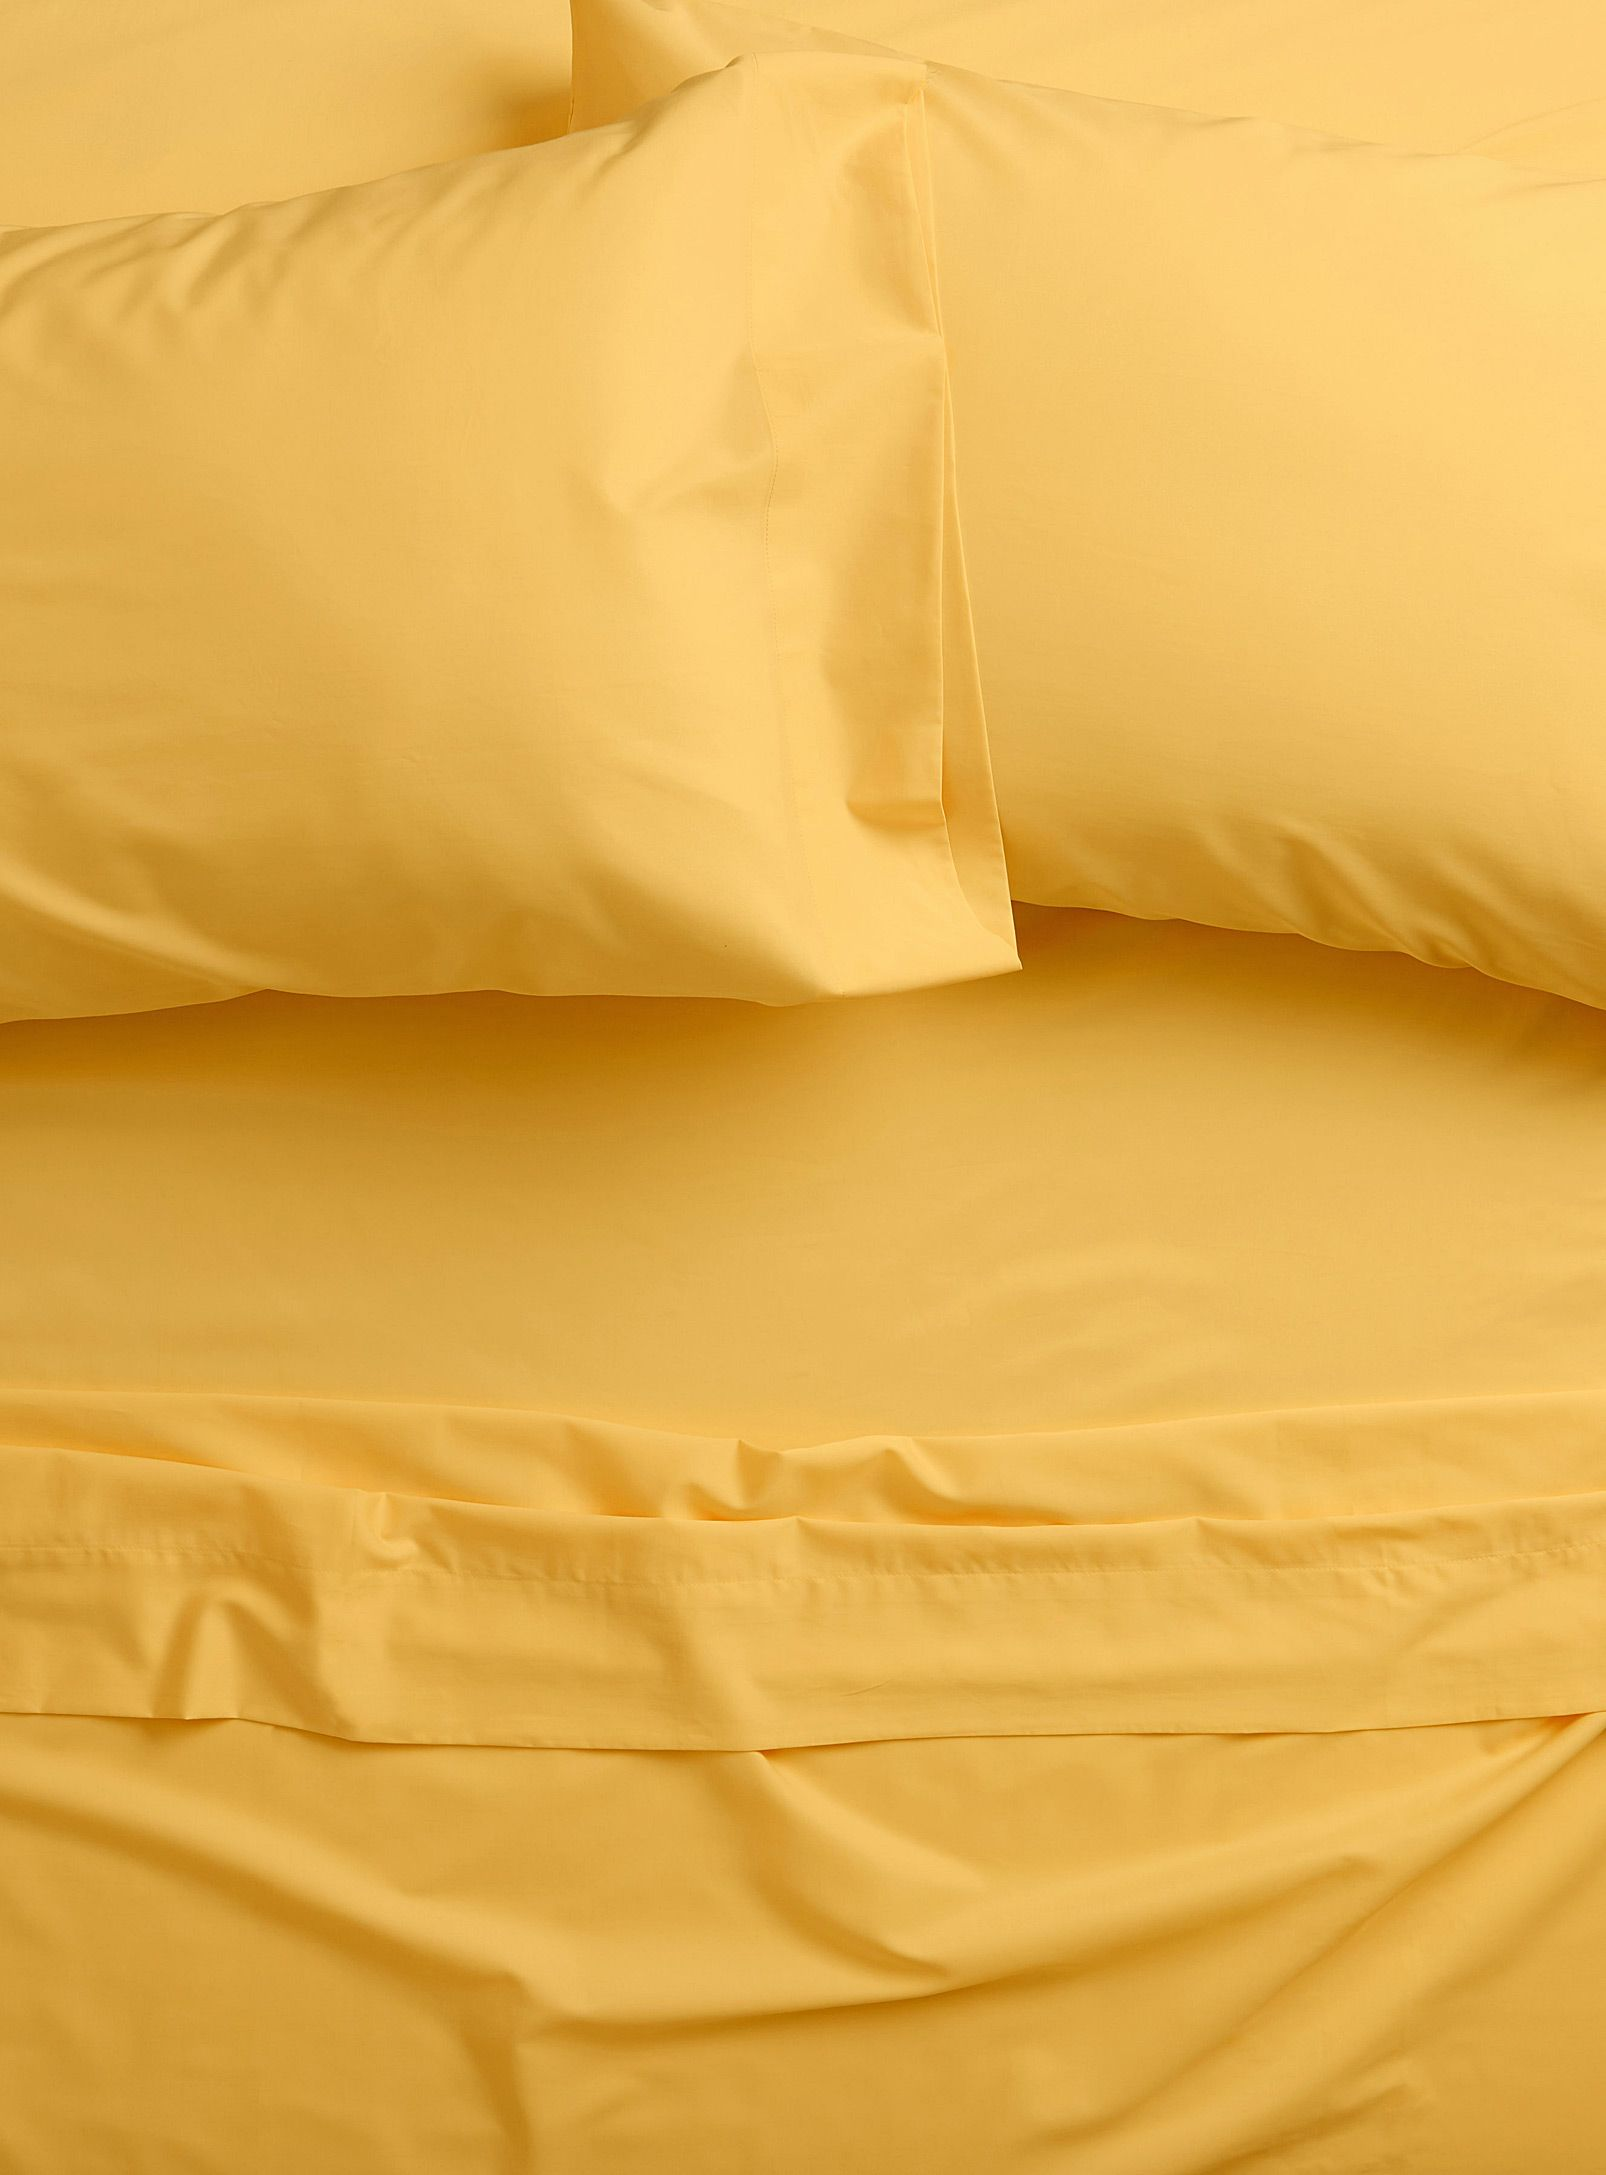 Bamboo Rayon And Cotton Sheet Set 300 Thread Count Fits